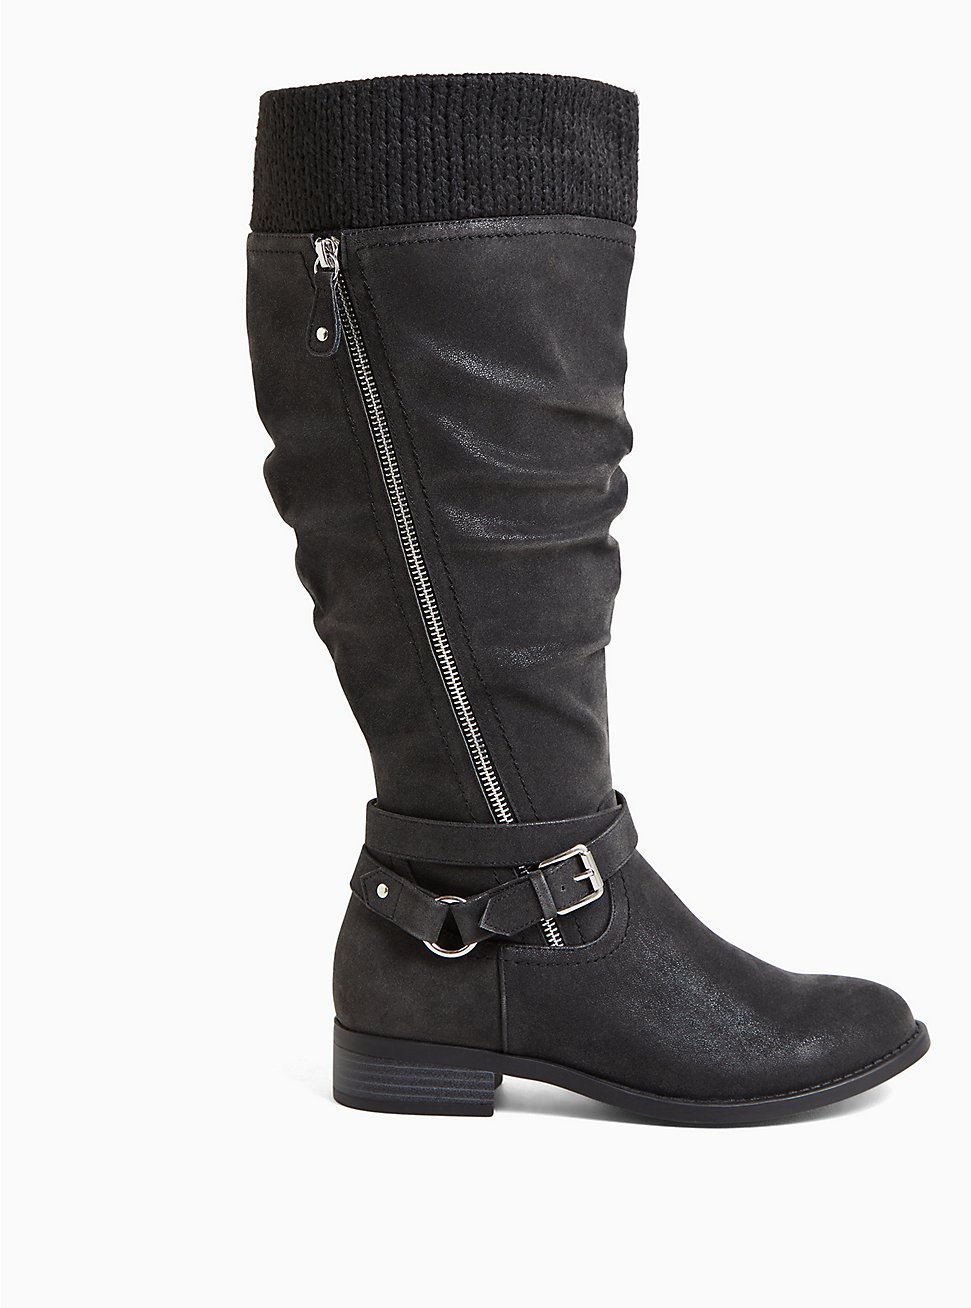 Plus Size Black Oiled Sweater Trimmed Buckle Knee-High Boot (WW & Wide to Extra Wide Calf), BLACK, hi-res